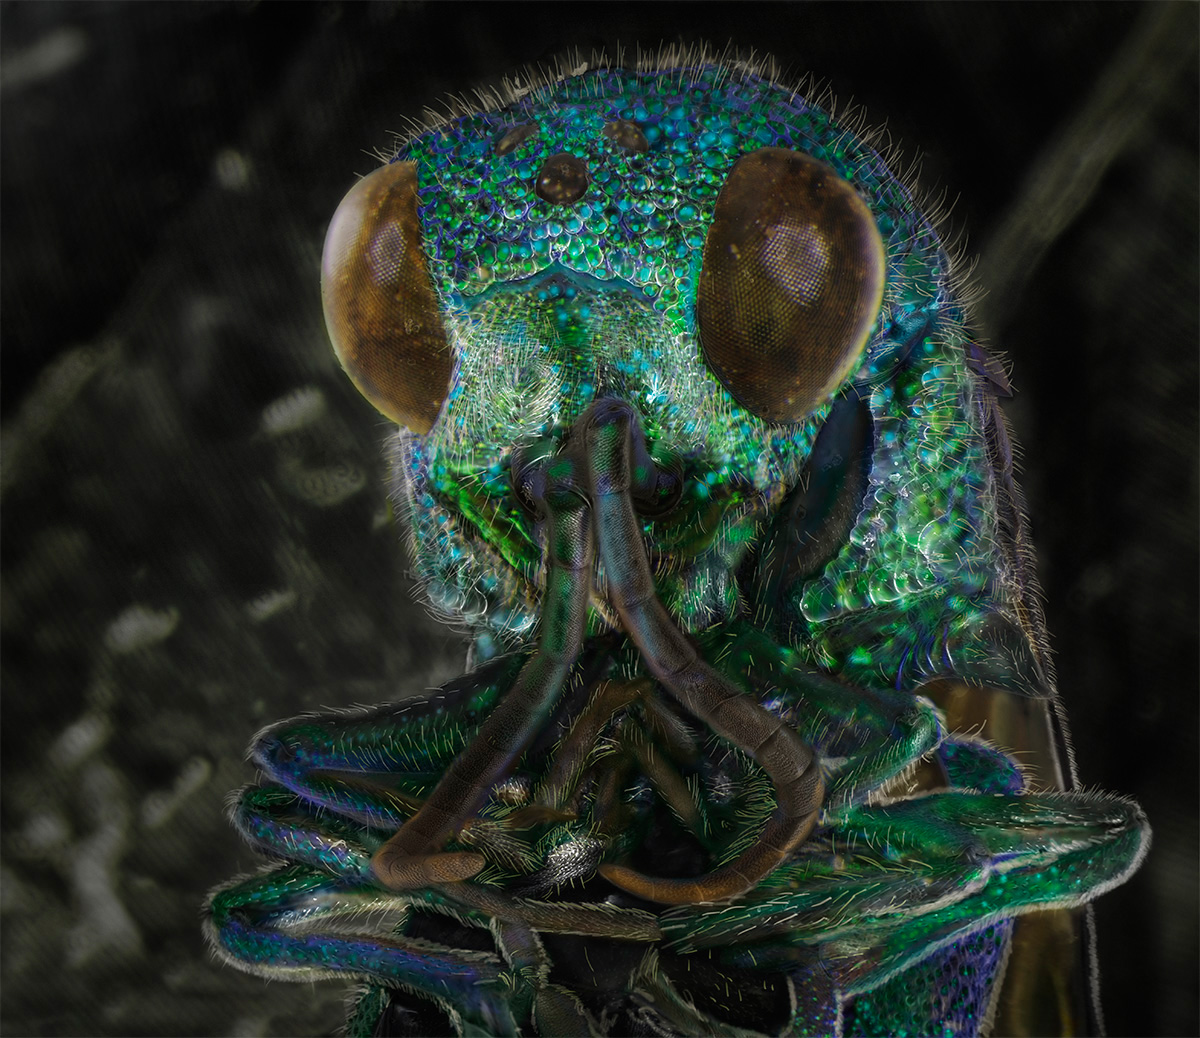 Window Screen, August 1st [Cuckoo Wasp] Date: 2013